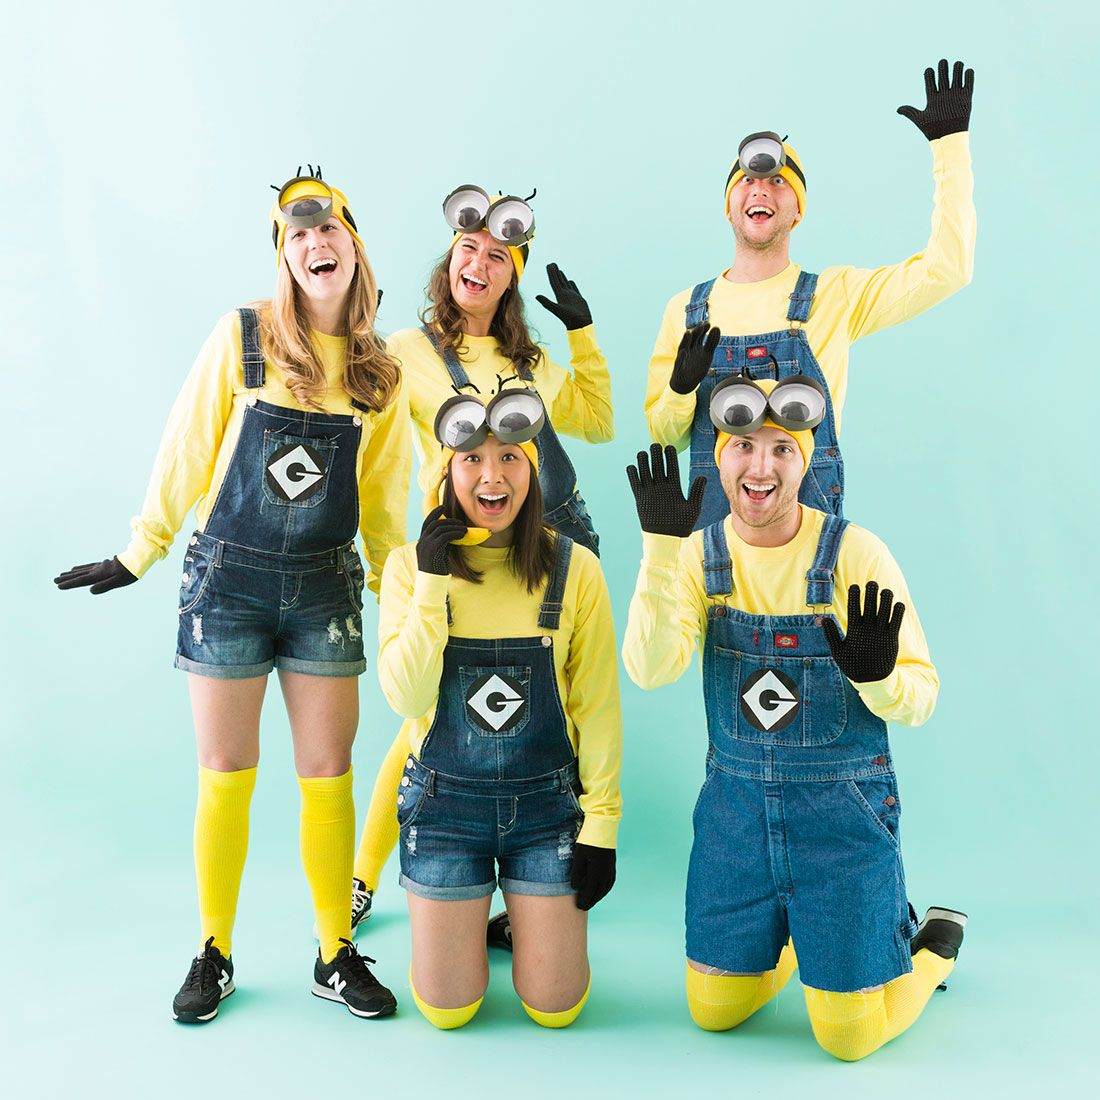 Make Minion Costumes for Your Squad This Halloween  sc 1 st  Pinterest & Make Minion Costumes for Your Squad This Halloween | Group halloween ...